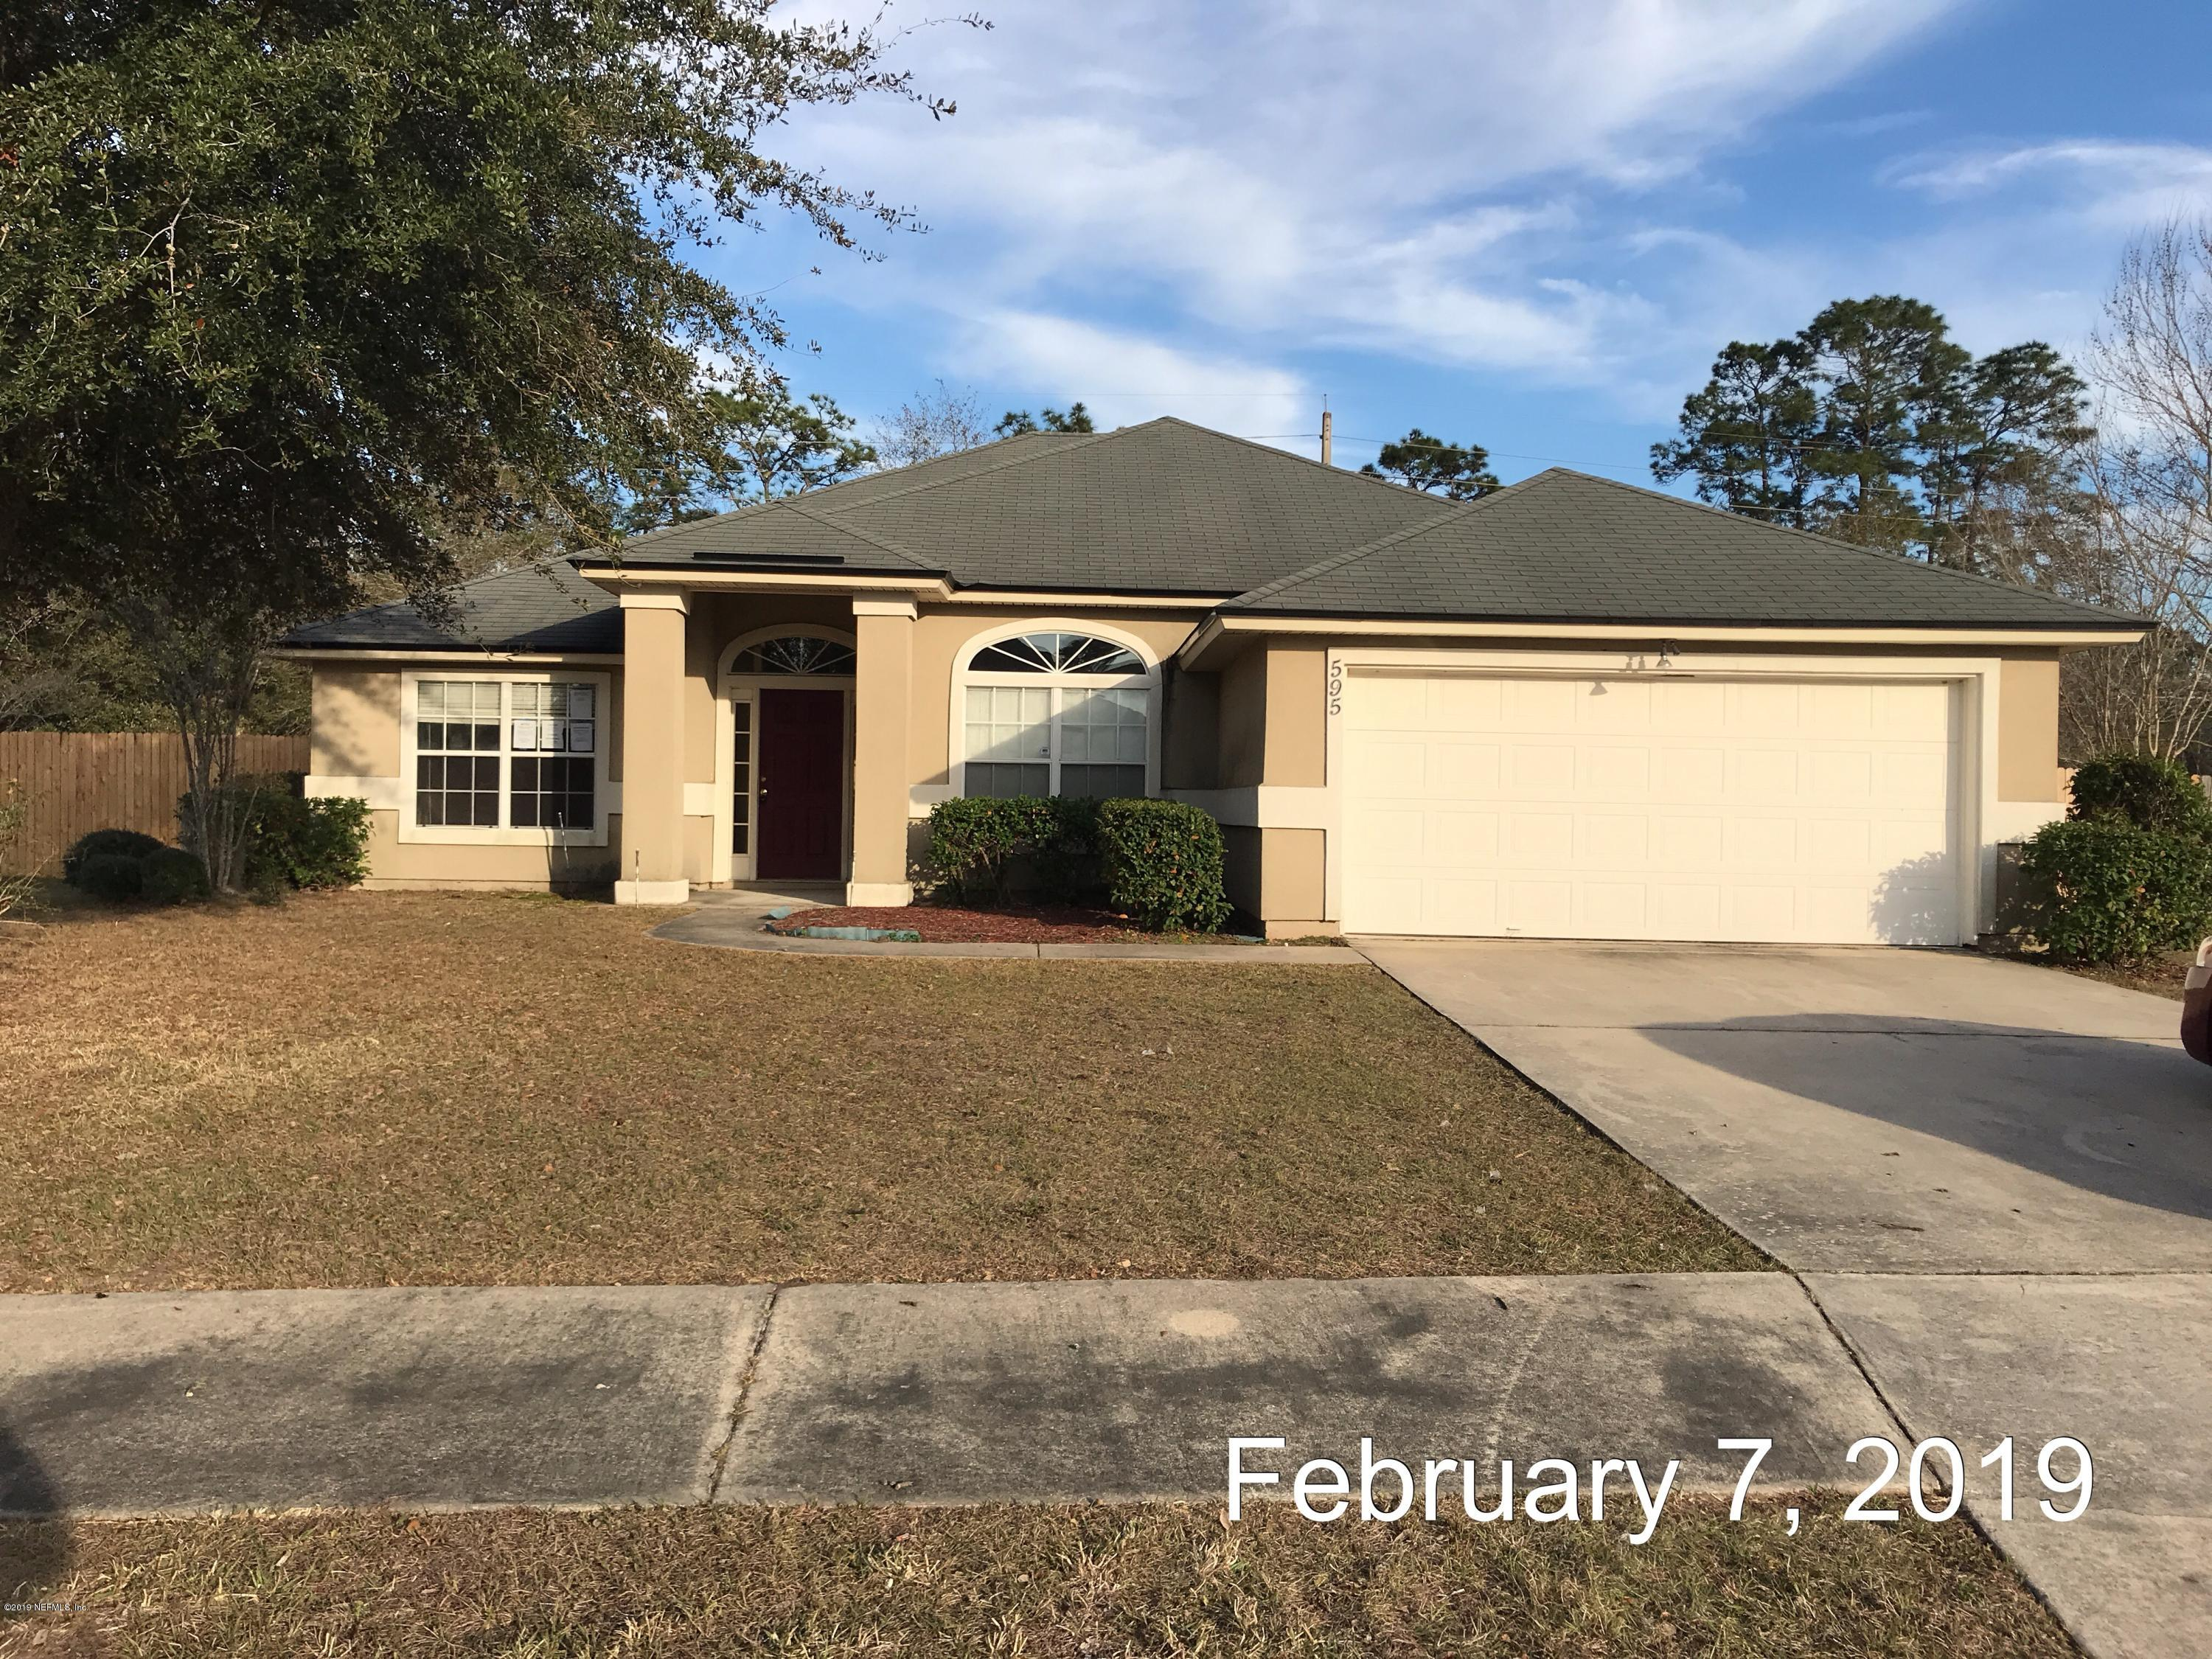 595 MARTIN LAKES, JACKSONVILLE, FLORIDA 32220, 4 Bedrooms Bedrooms, ,2 BathroomsBathrooms,Residential - single family,For sale,MARTIN LAKES,979147